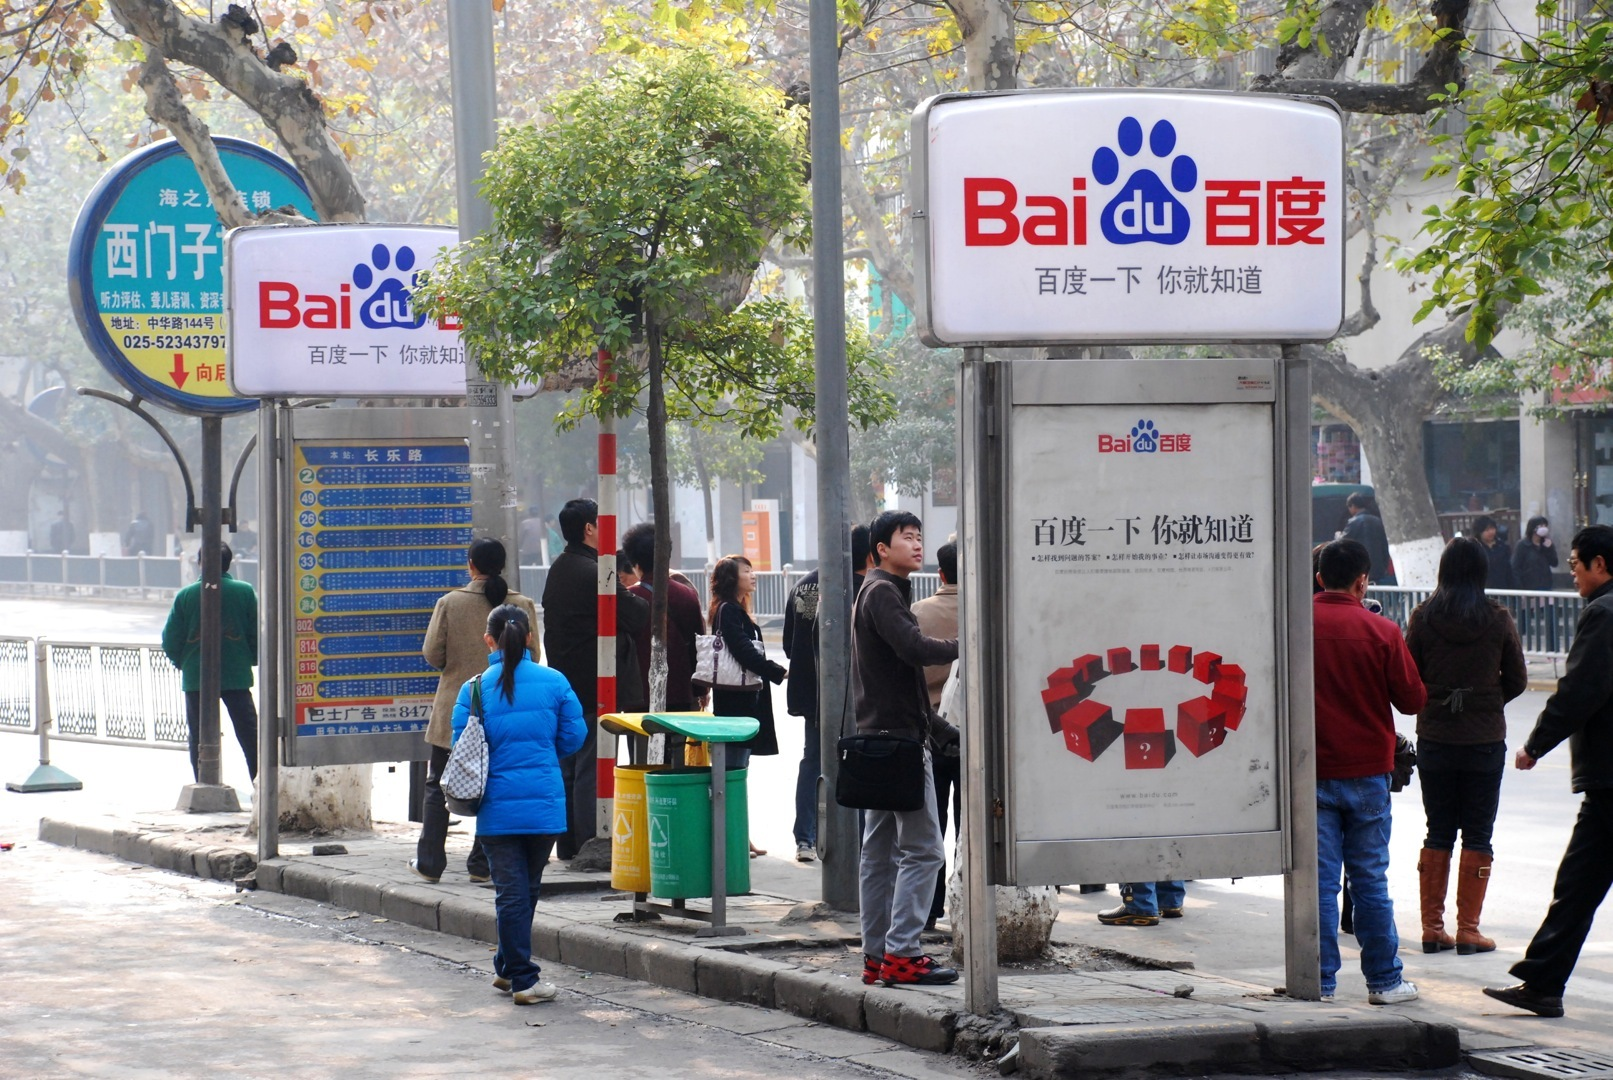 Baidu-Sign-on-Chinese-Street